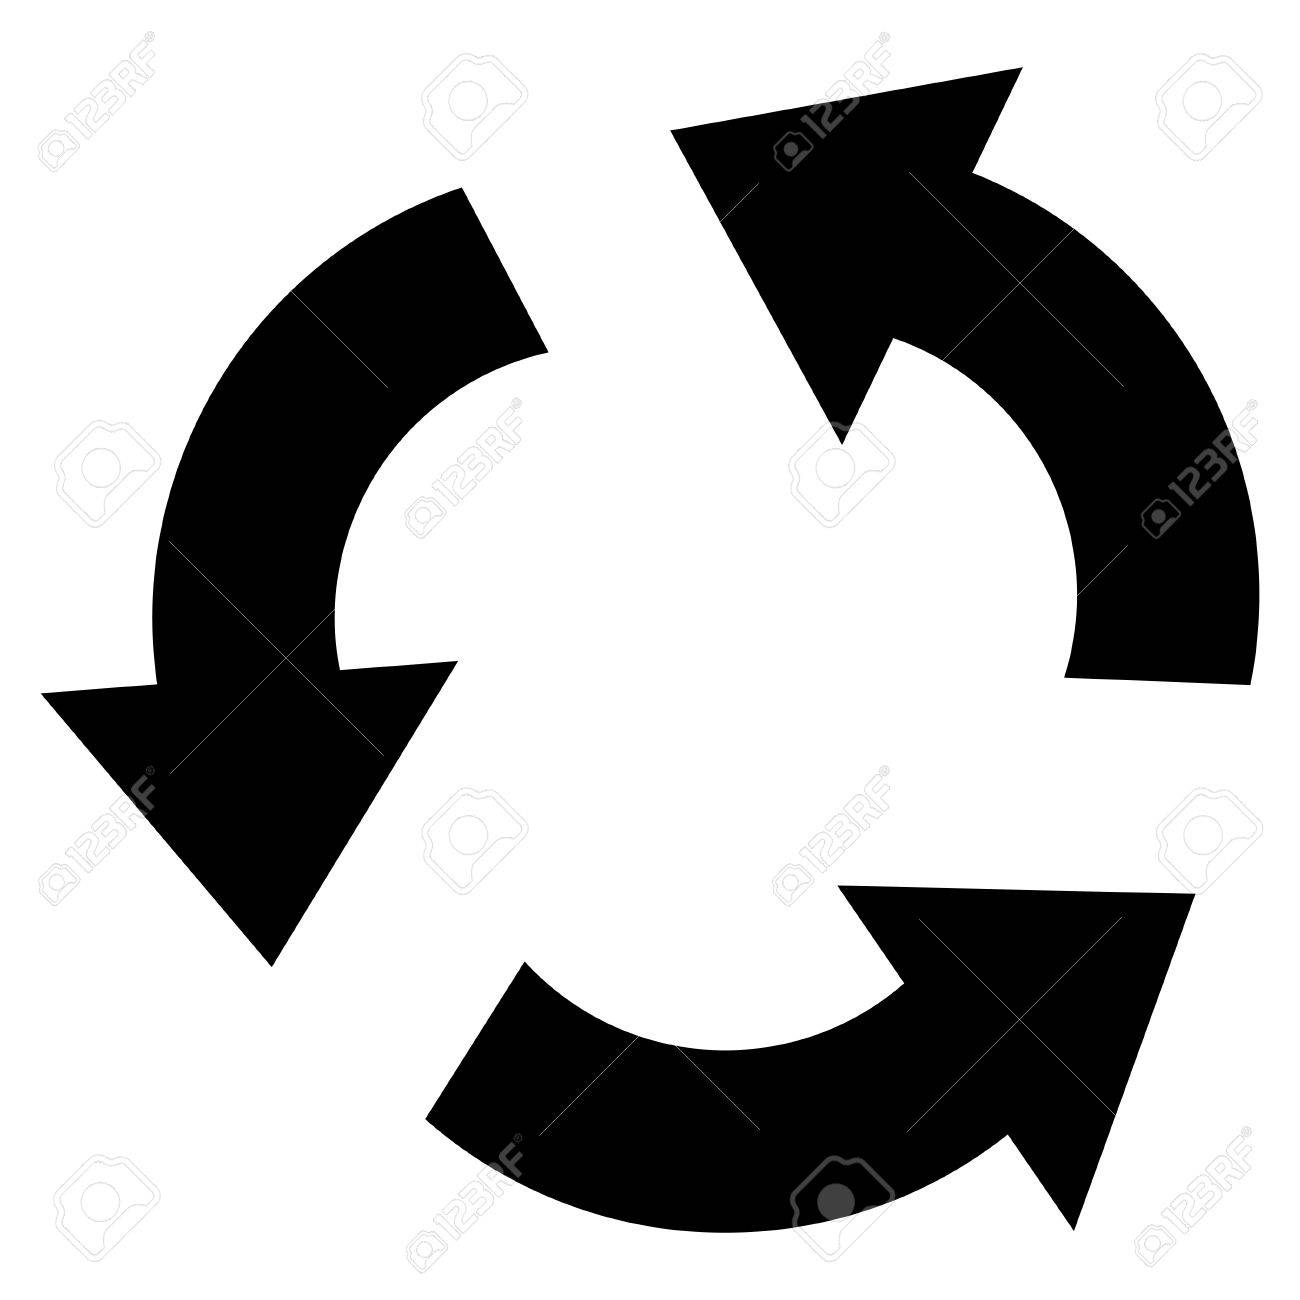 recycle vector icon style is flat icon symbol black color rh 123rf com recycle vector file recycle vector art